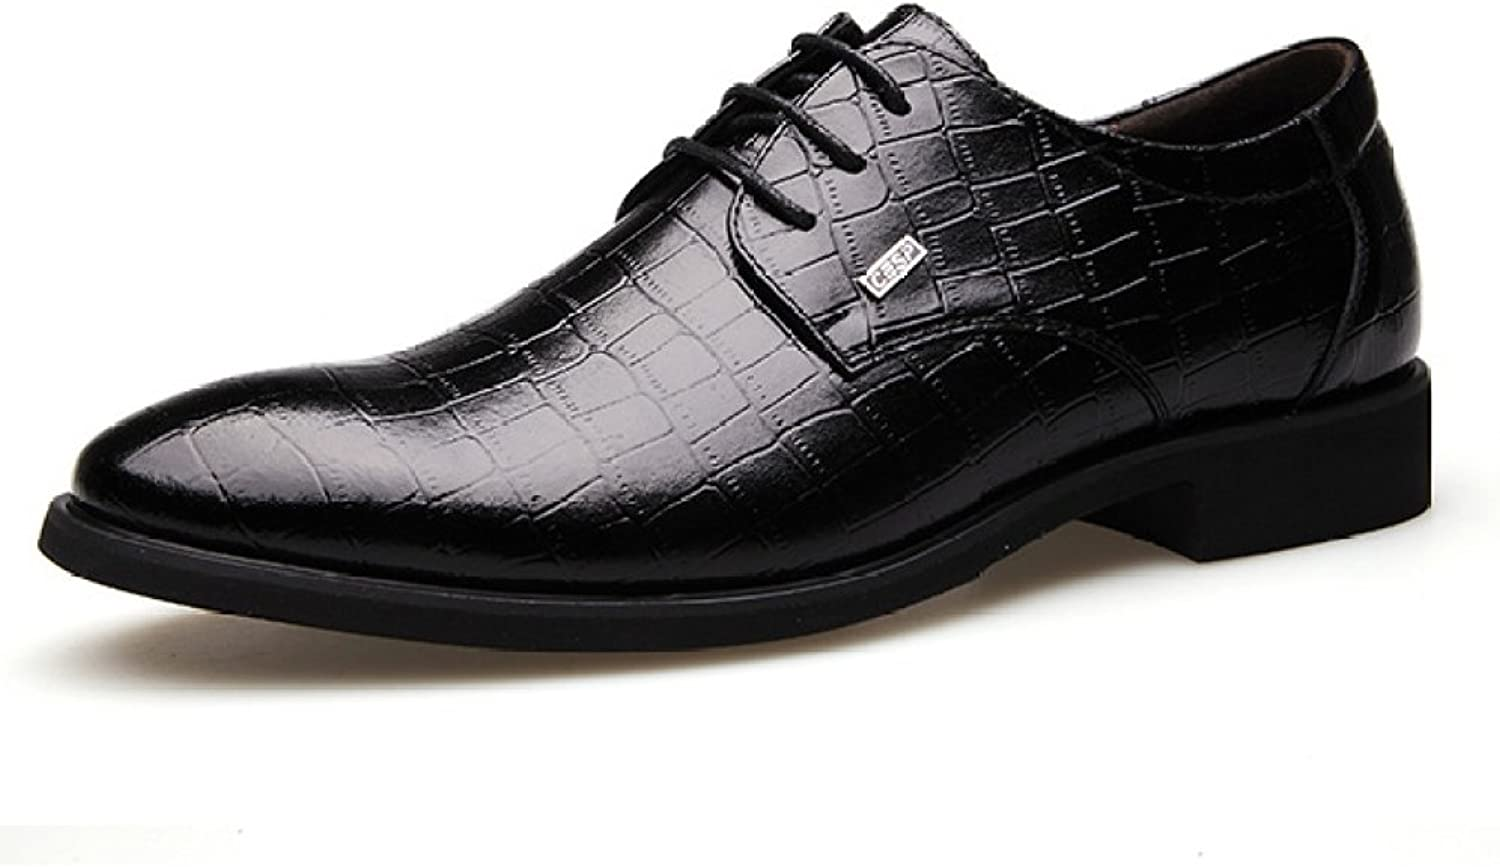 HGDR Men's Leather shoes Crocodile Pattern Pointed Toe Lace-up shoes Business Dress Wedding Formal shoes